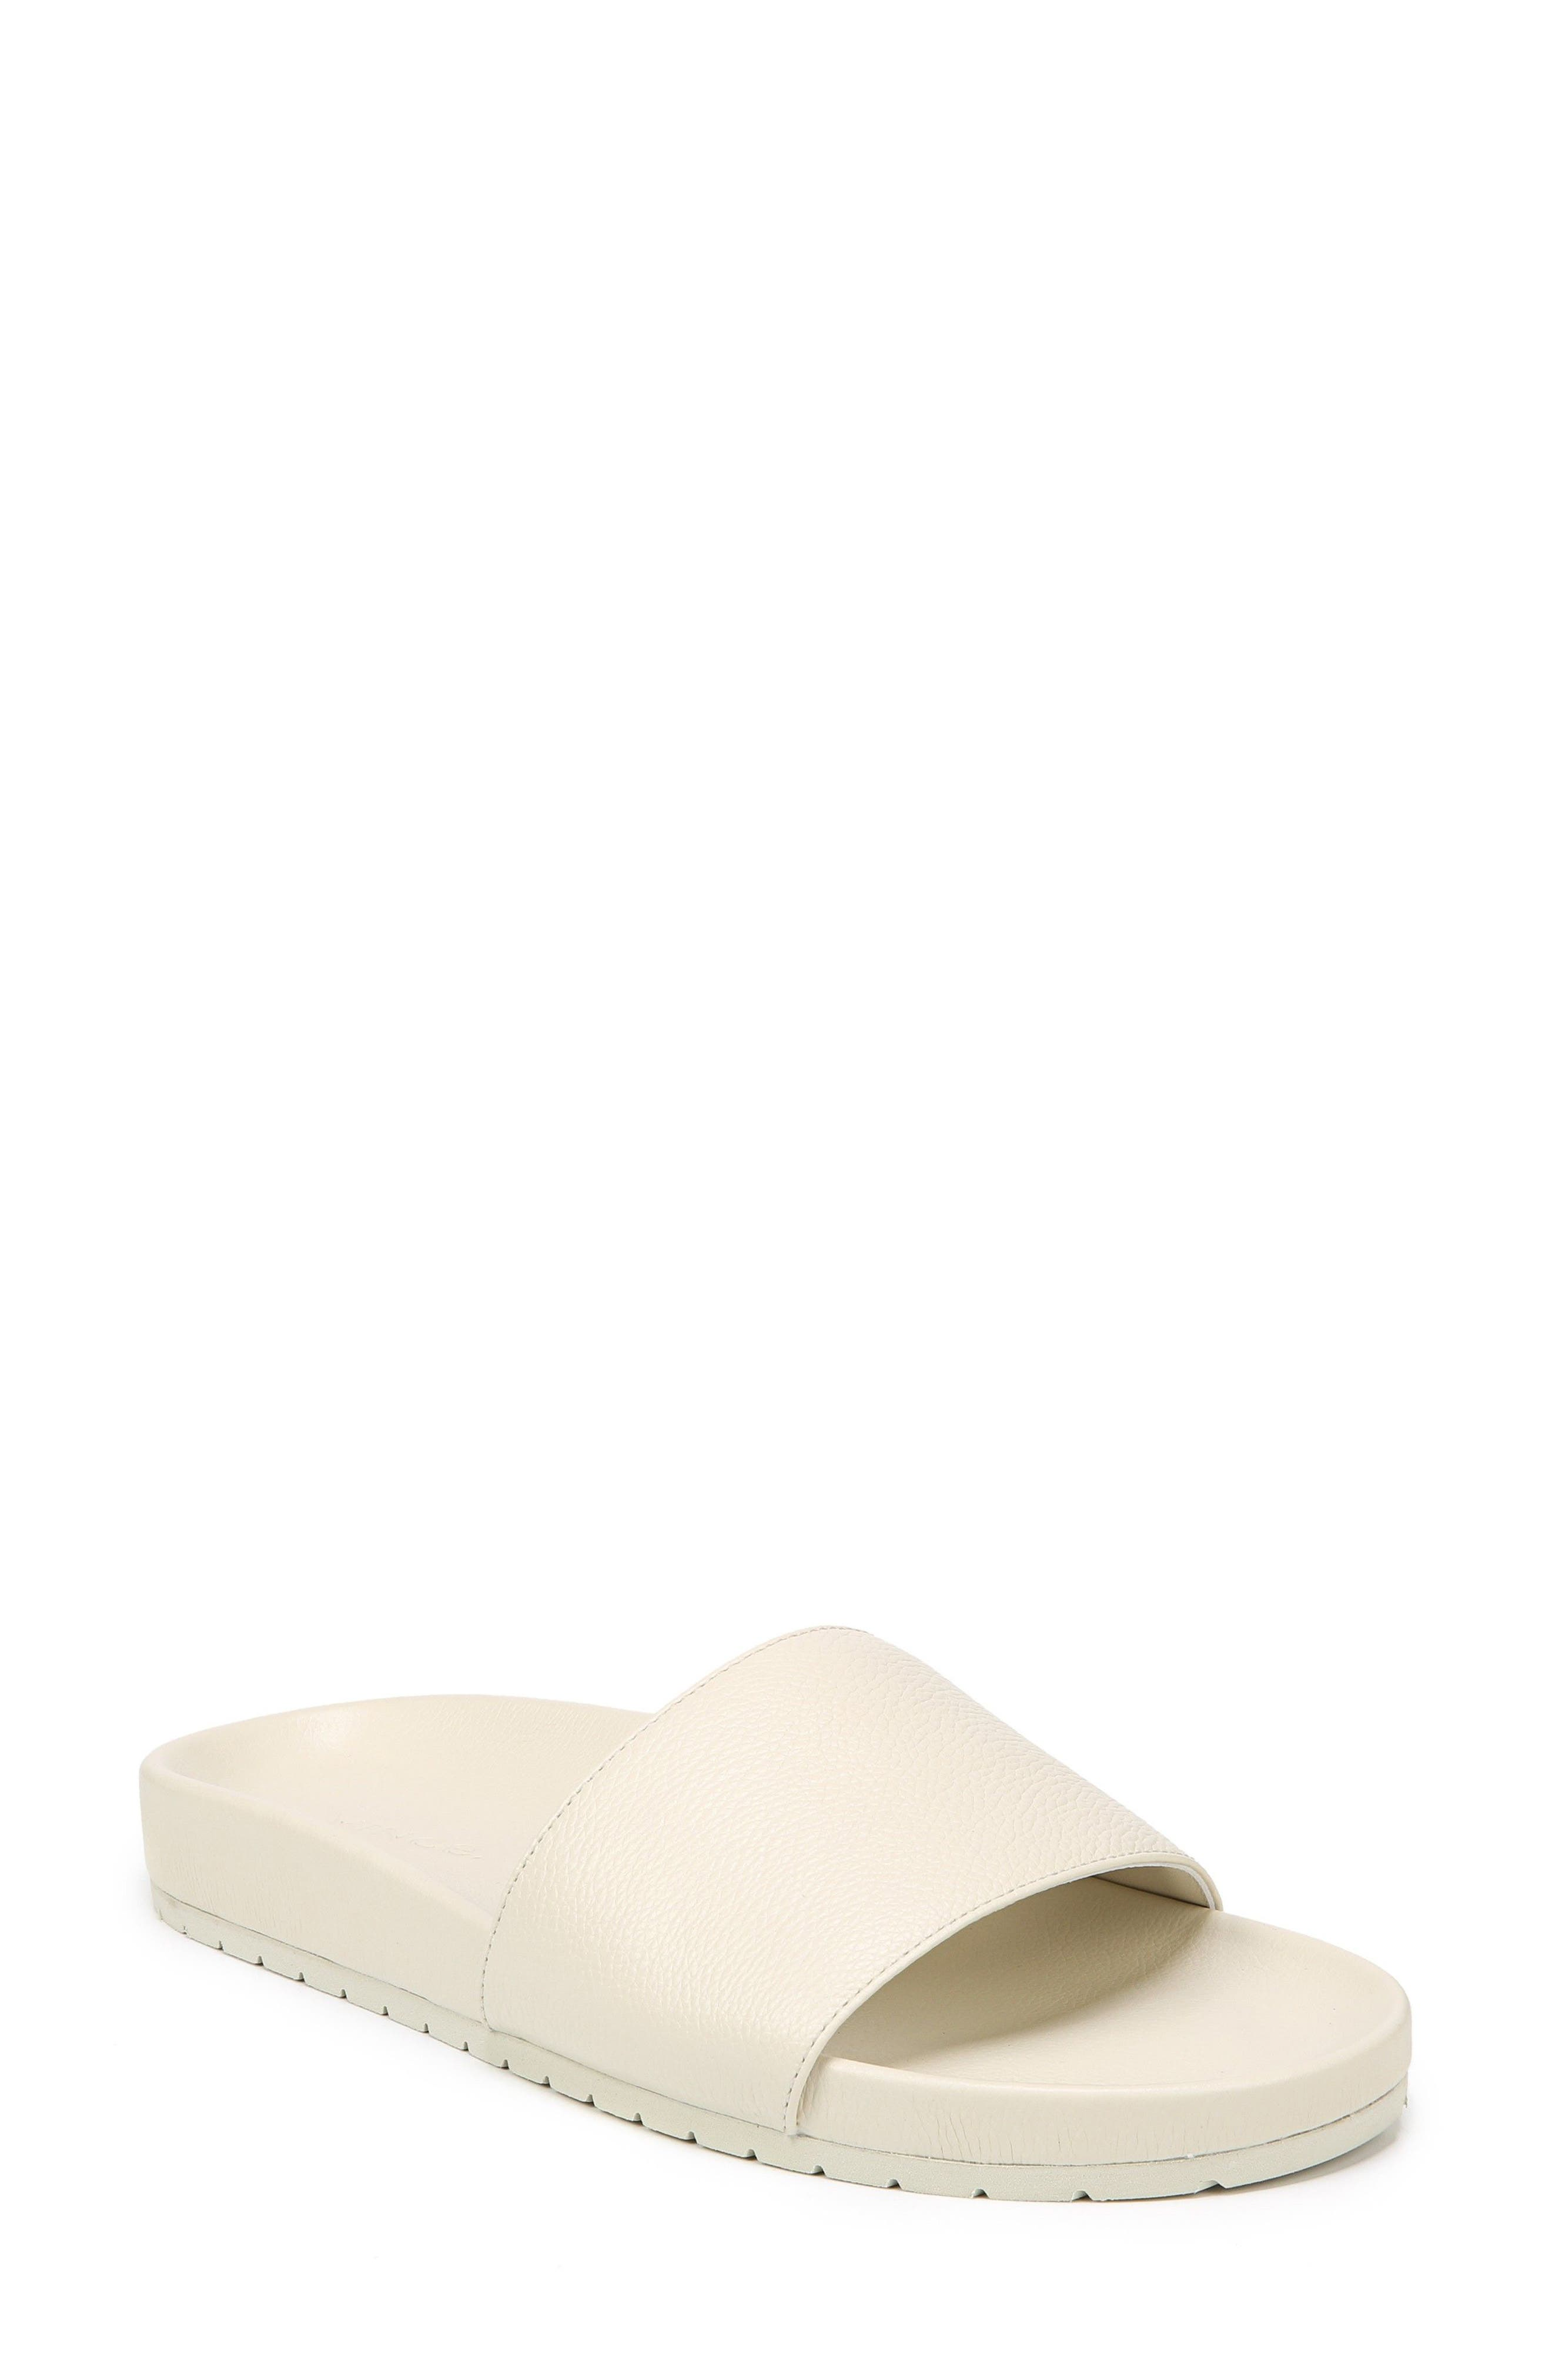 Gavin Slide Sandal,                         Main,                         color, Ecru